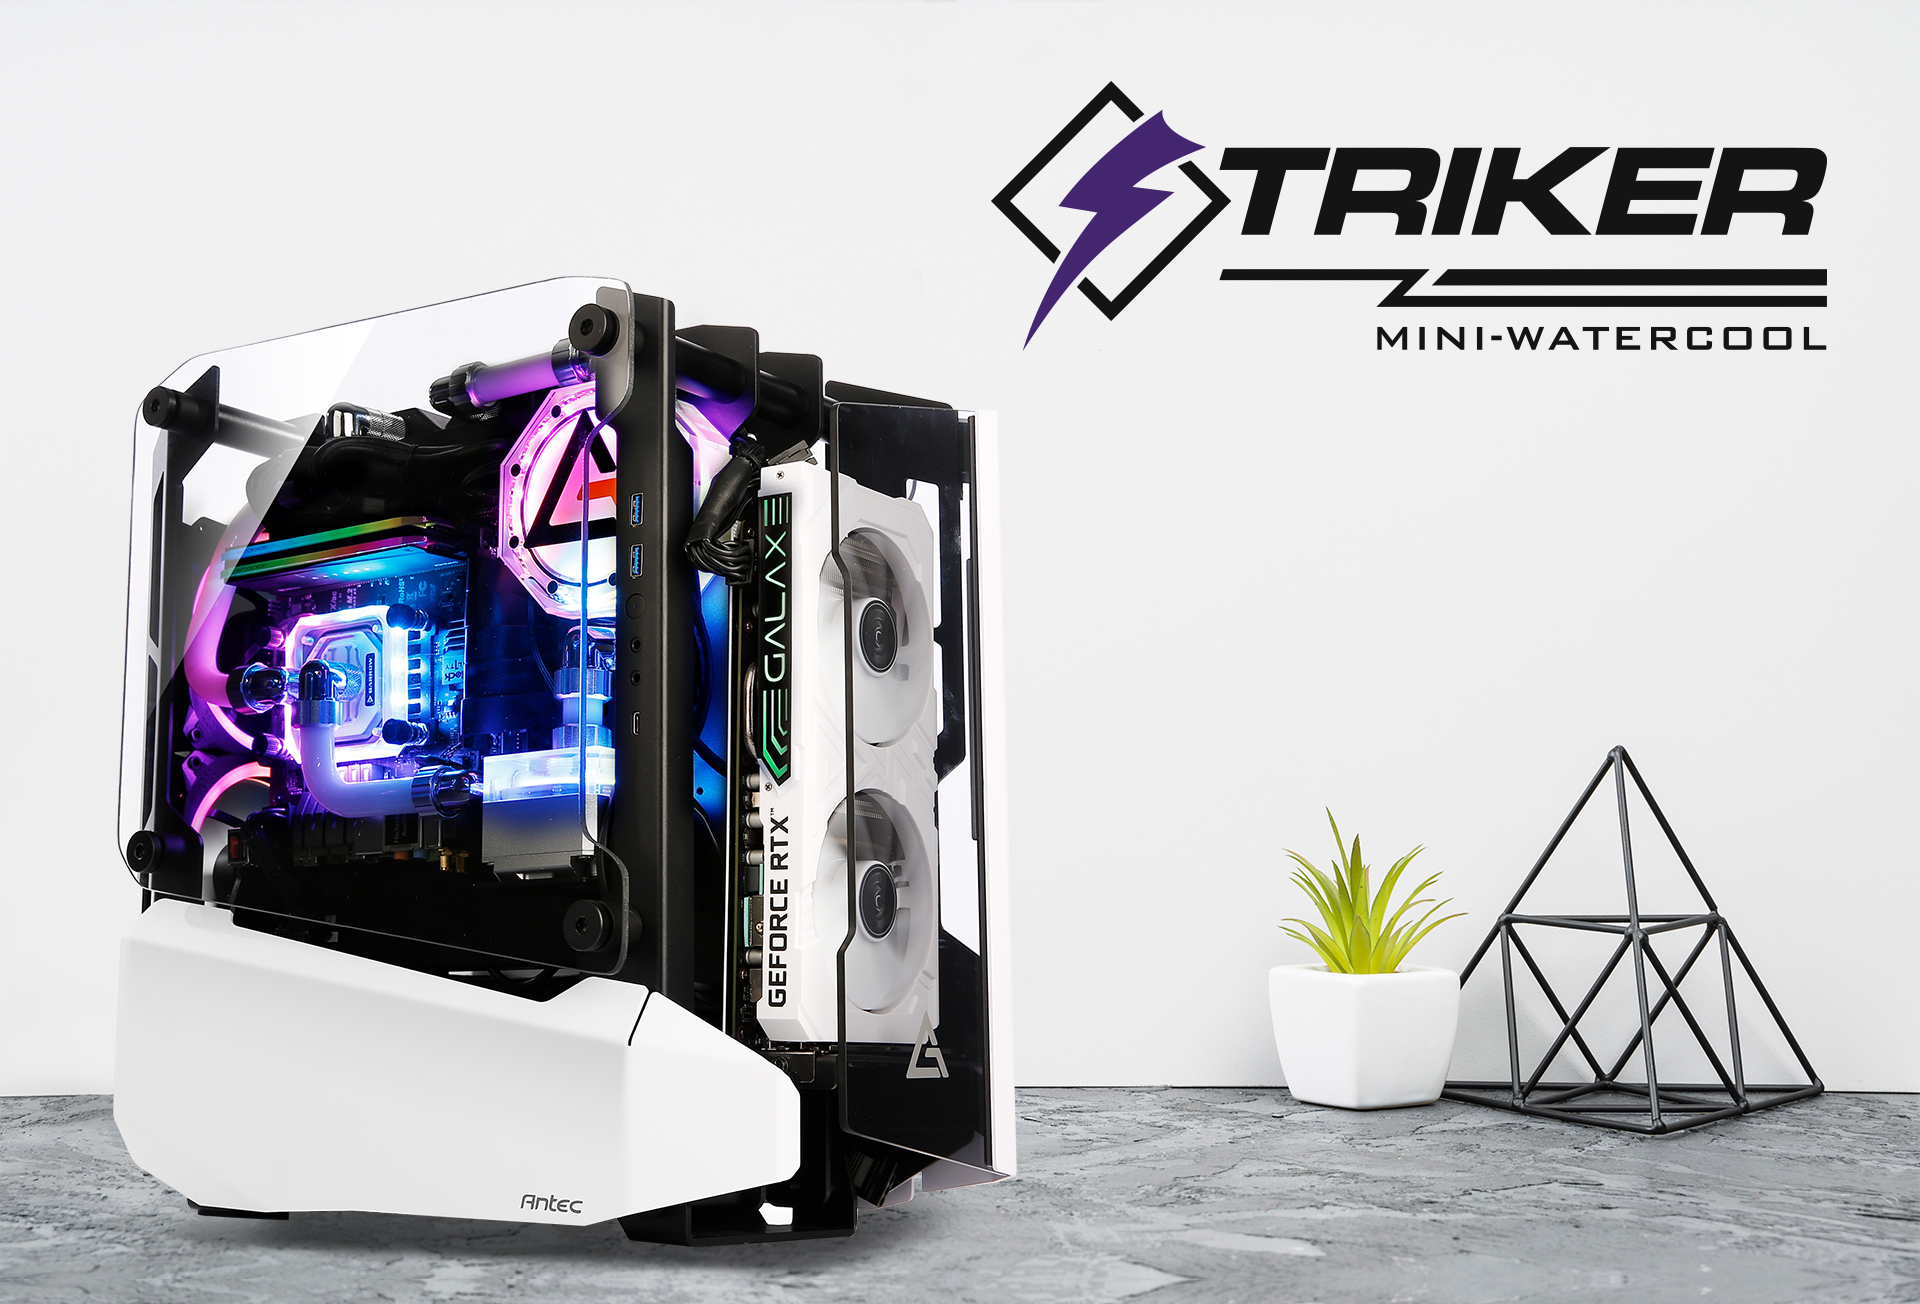 Antec STRIKER Aluminum and Steel ITX Computer Side view and RRIKER MINI-WATERCOOL icon